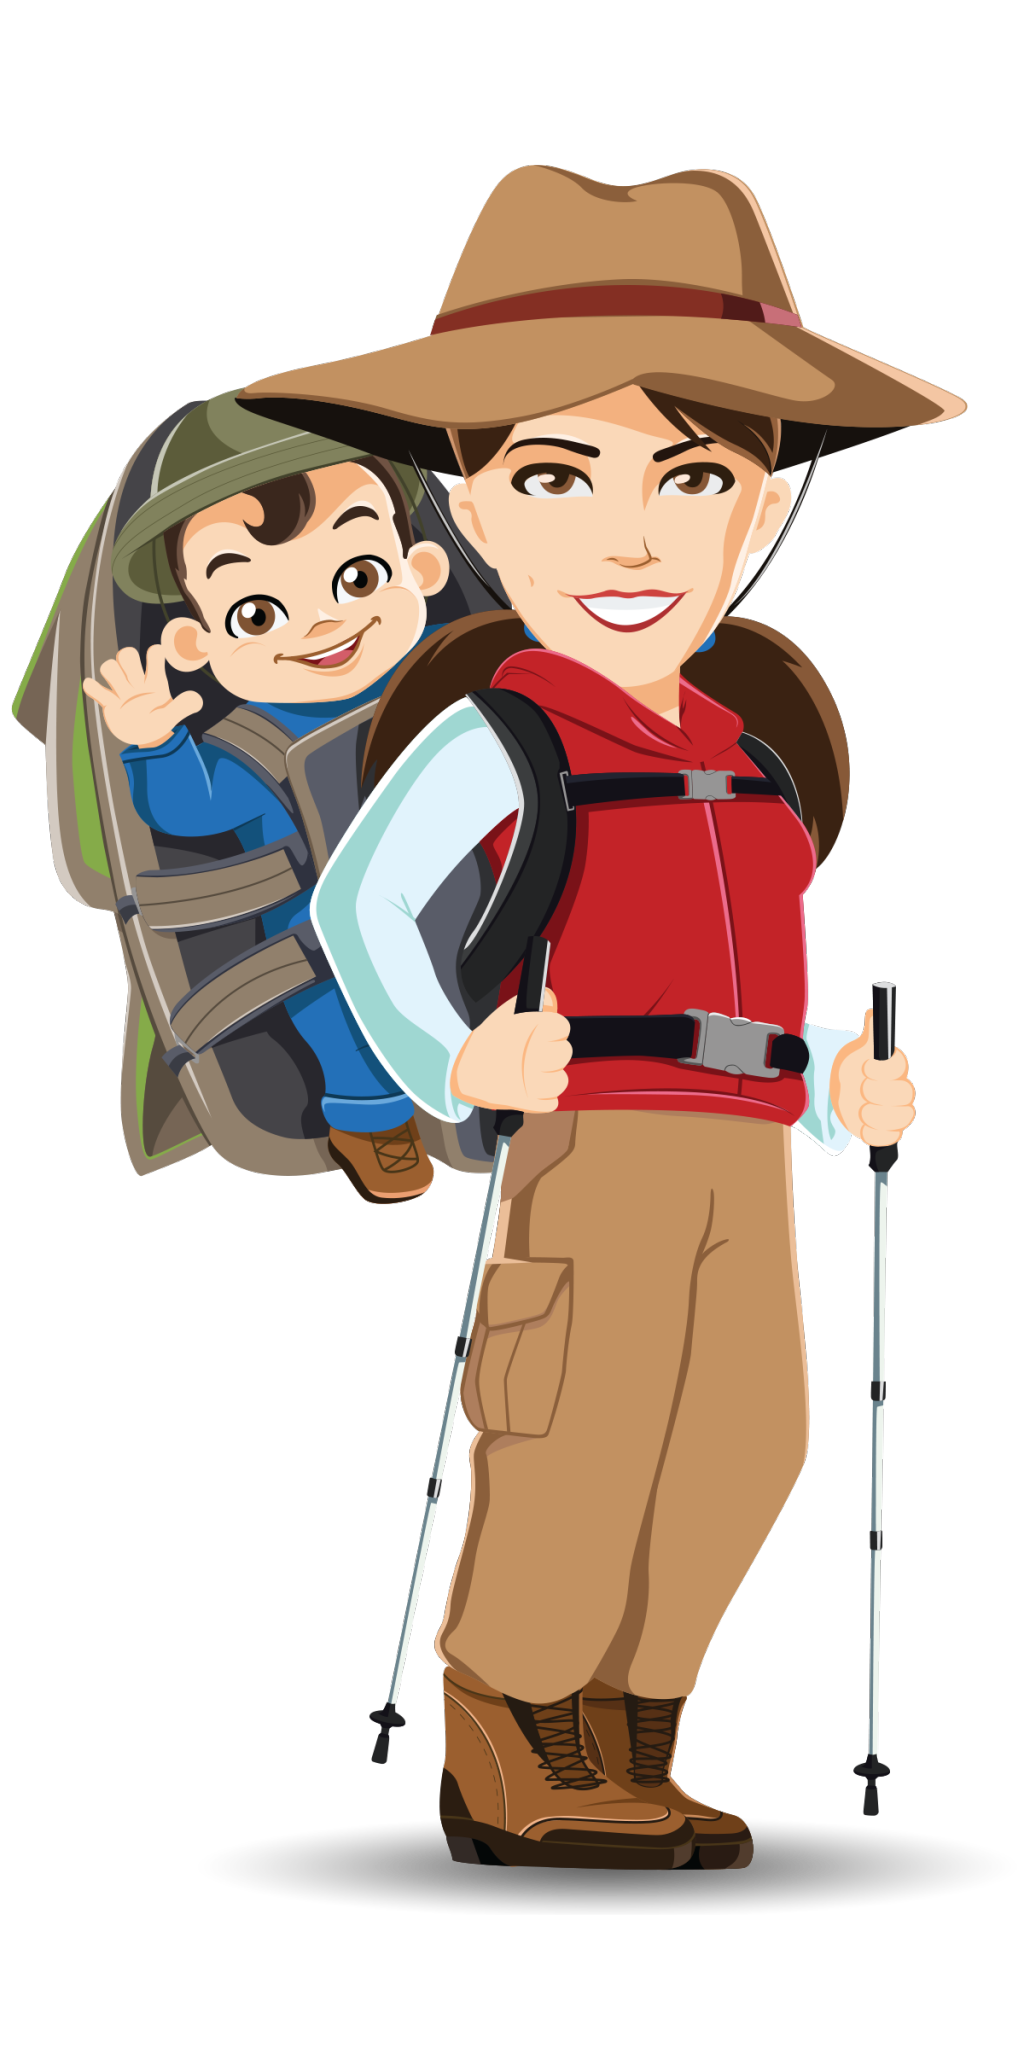 Hiking baby can i. Hike clipart hikinh